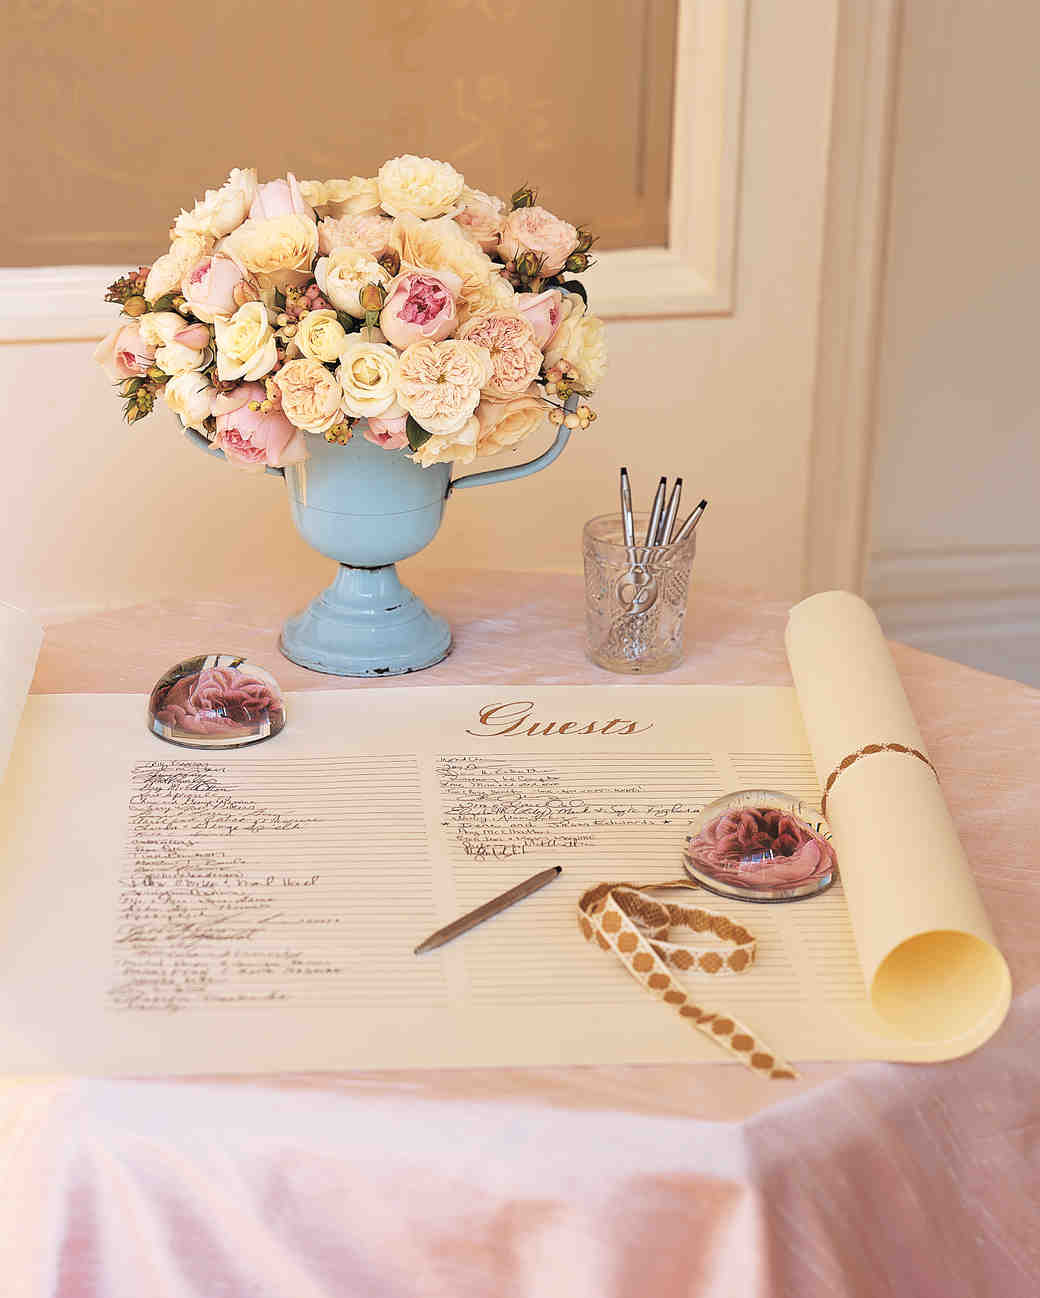 68 Guest Books from Real Weddings | Martha Stewart Weddings